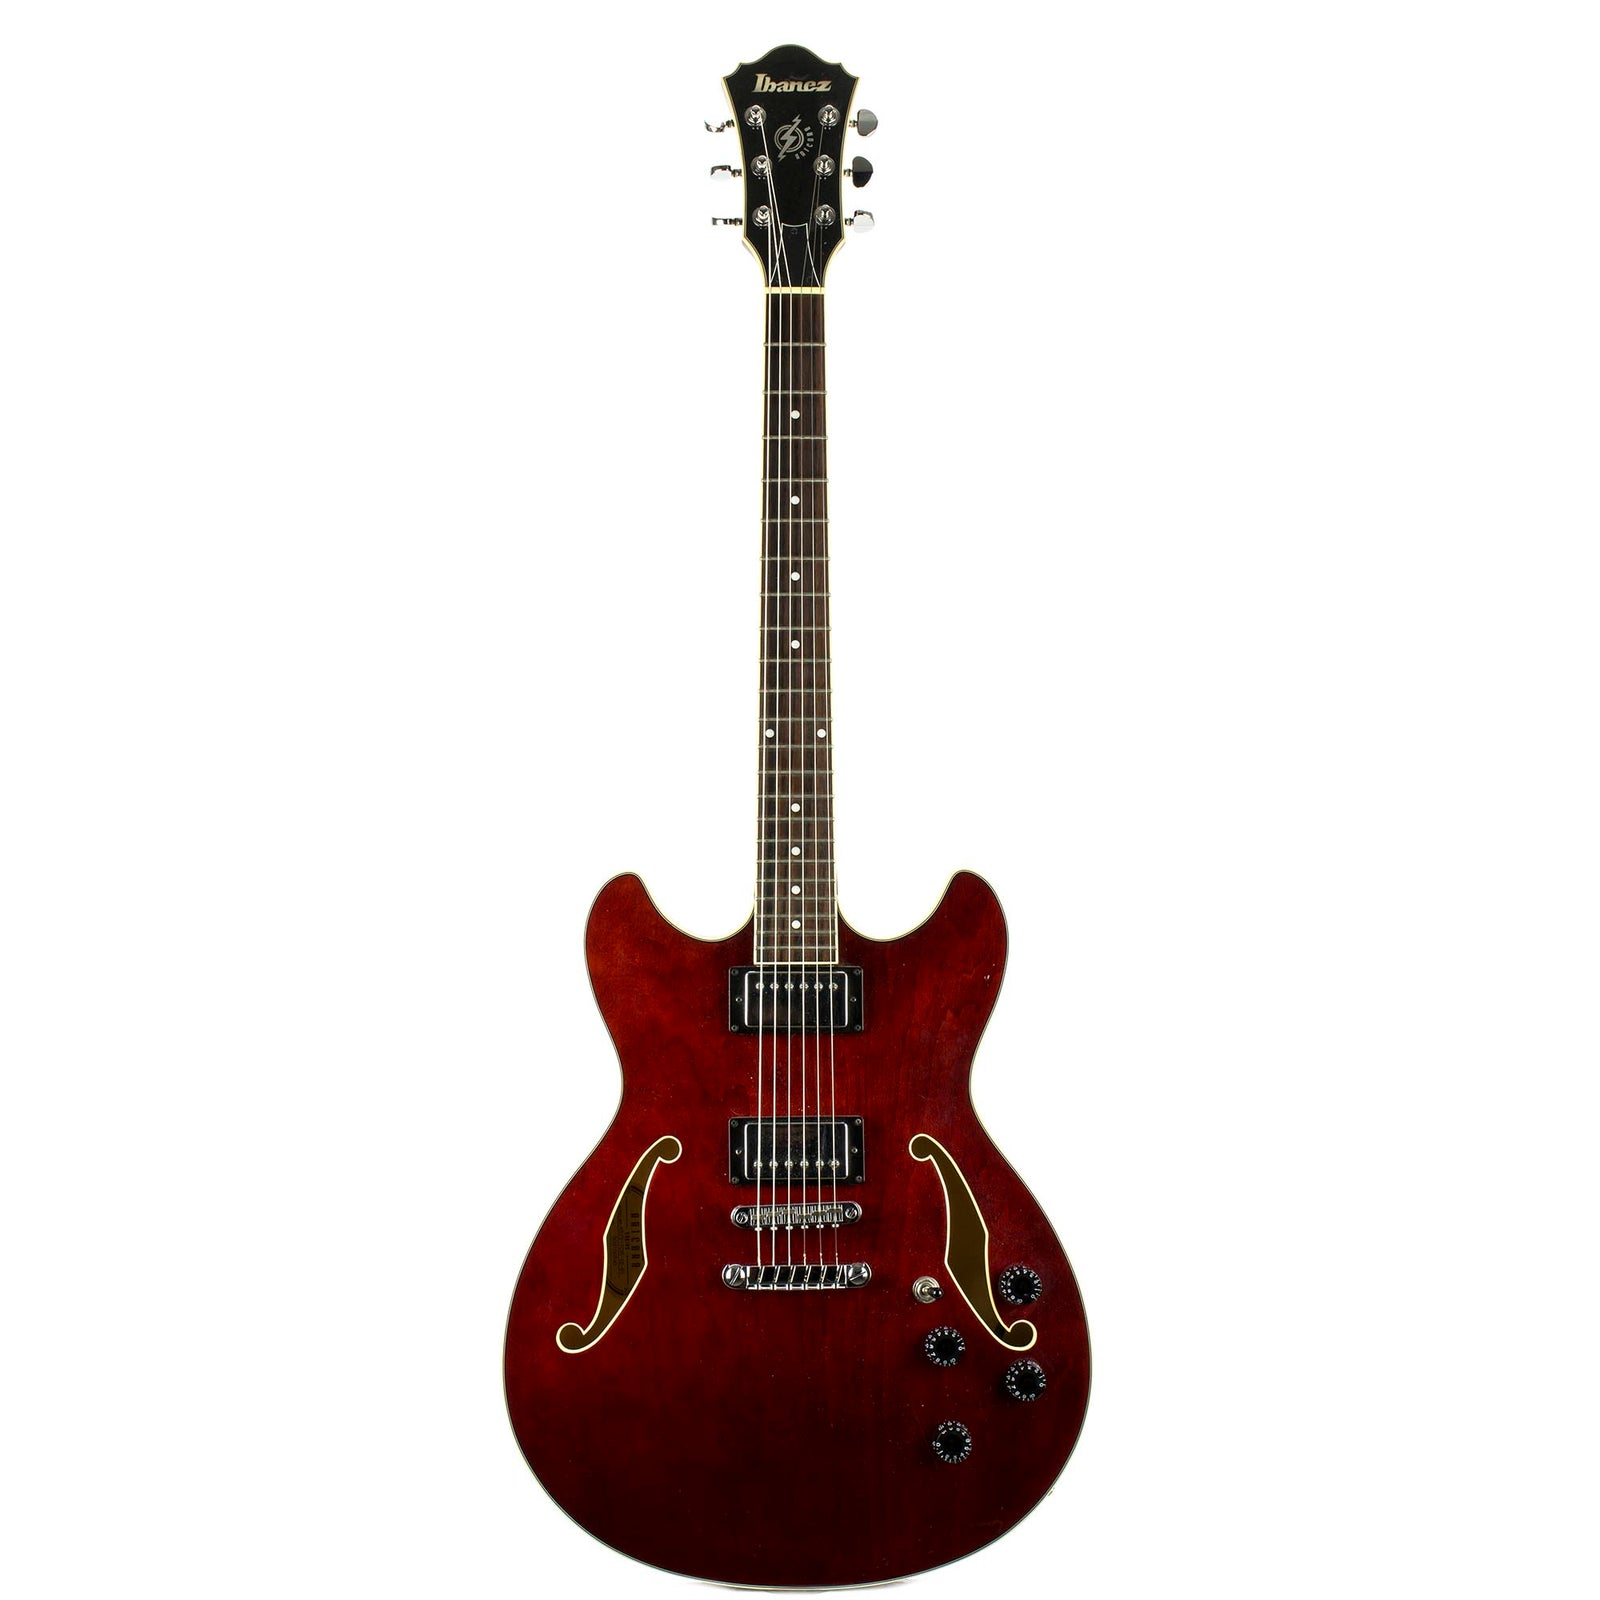 Ibanez AS73 Artcore - Trans Cherry - Used